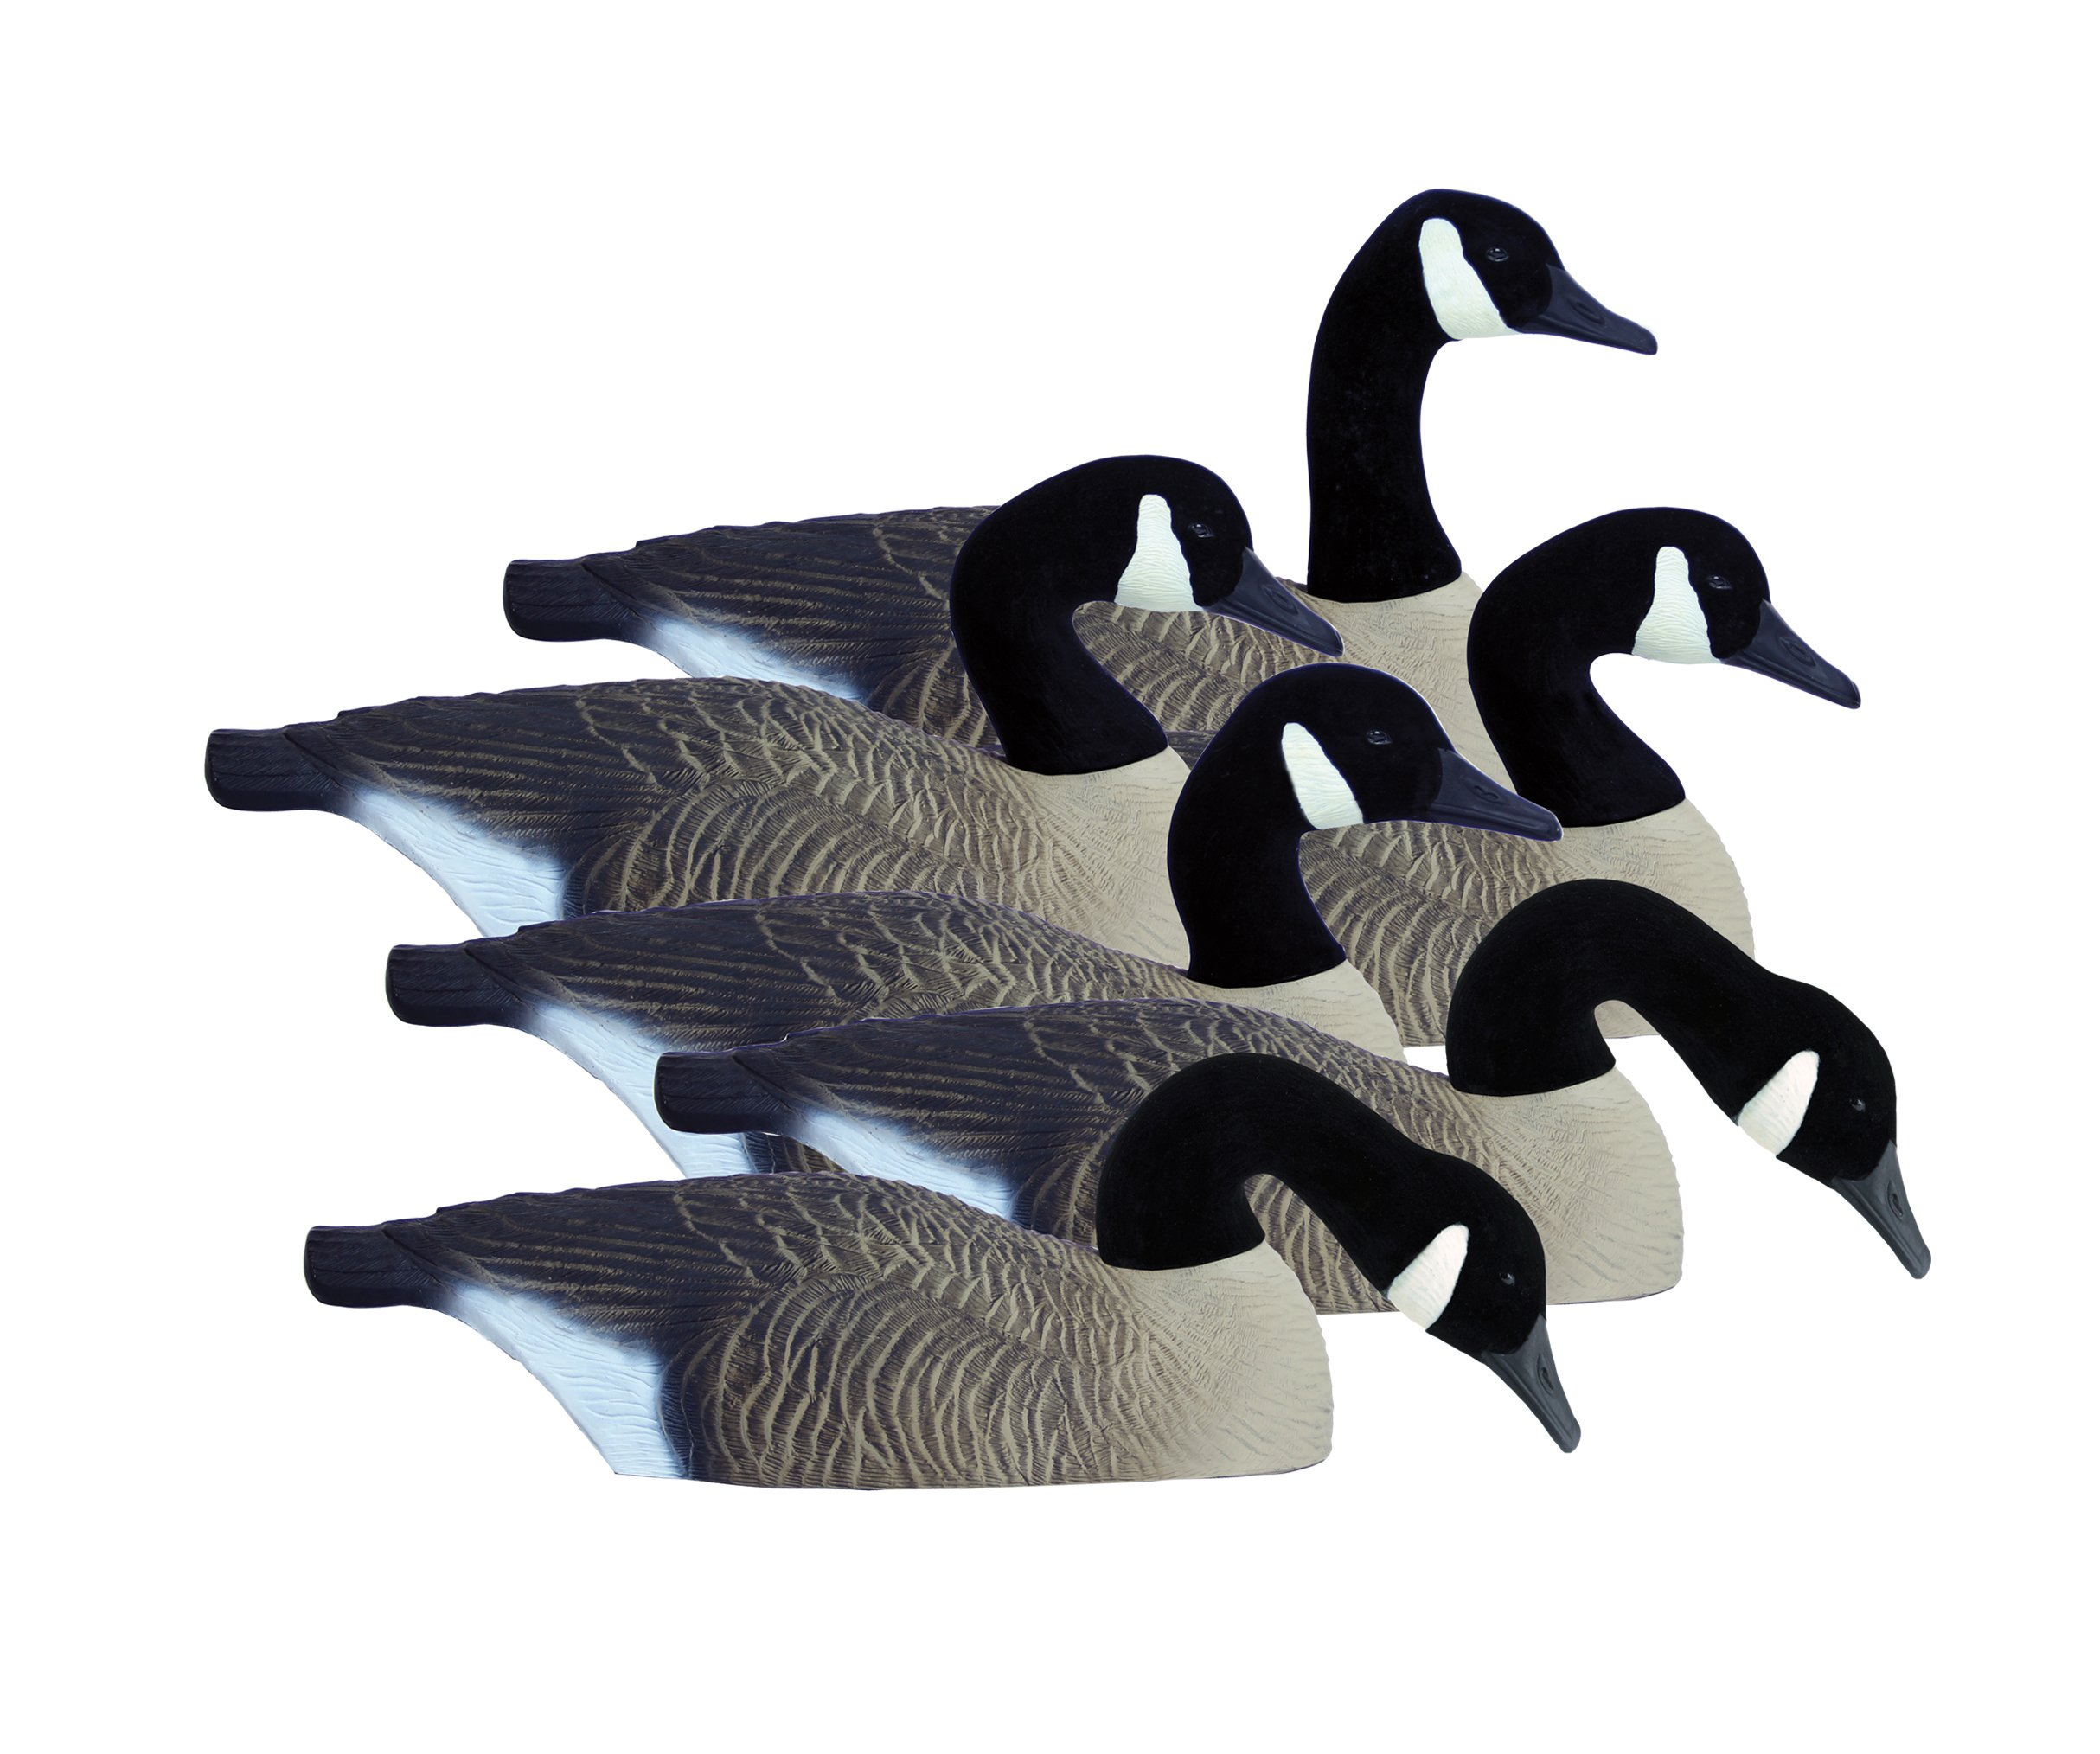 Higdon Outdoors Canada Full-Size Half Shell Hunting Decoys by Higdon Outdoors